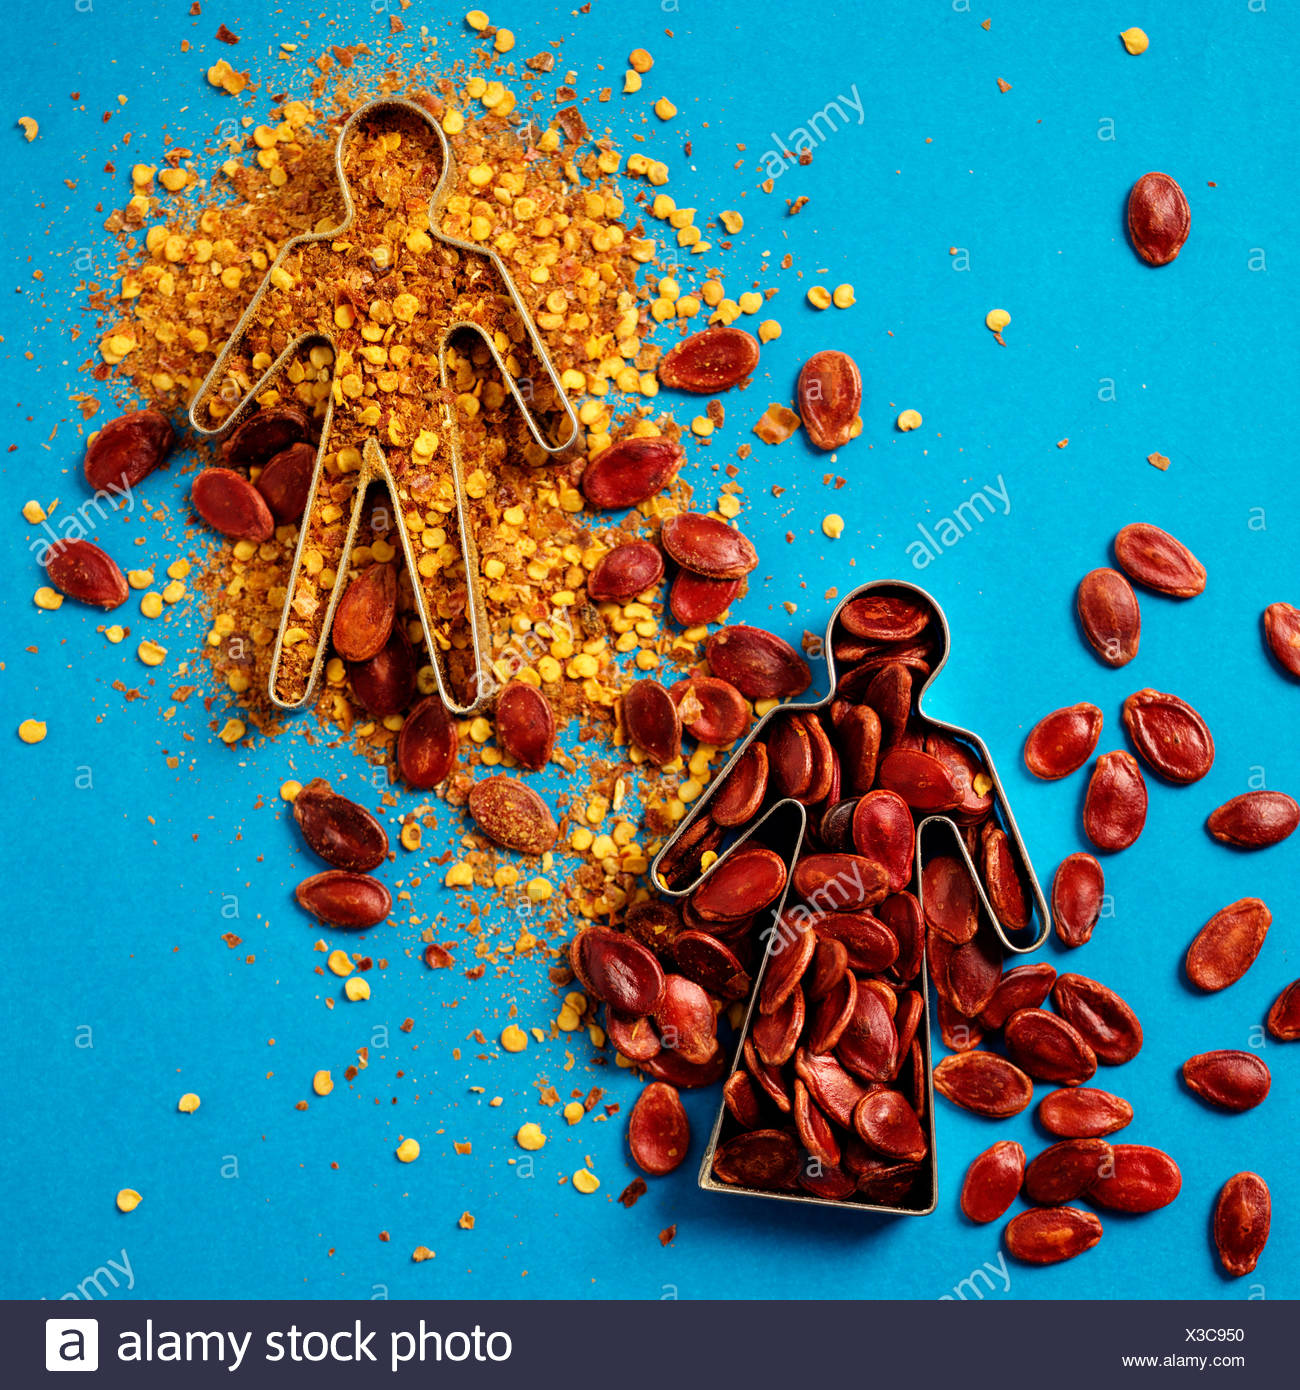 Still Life of Gingerbread Forms with Spices. - Stock Image